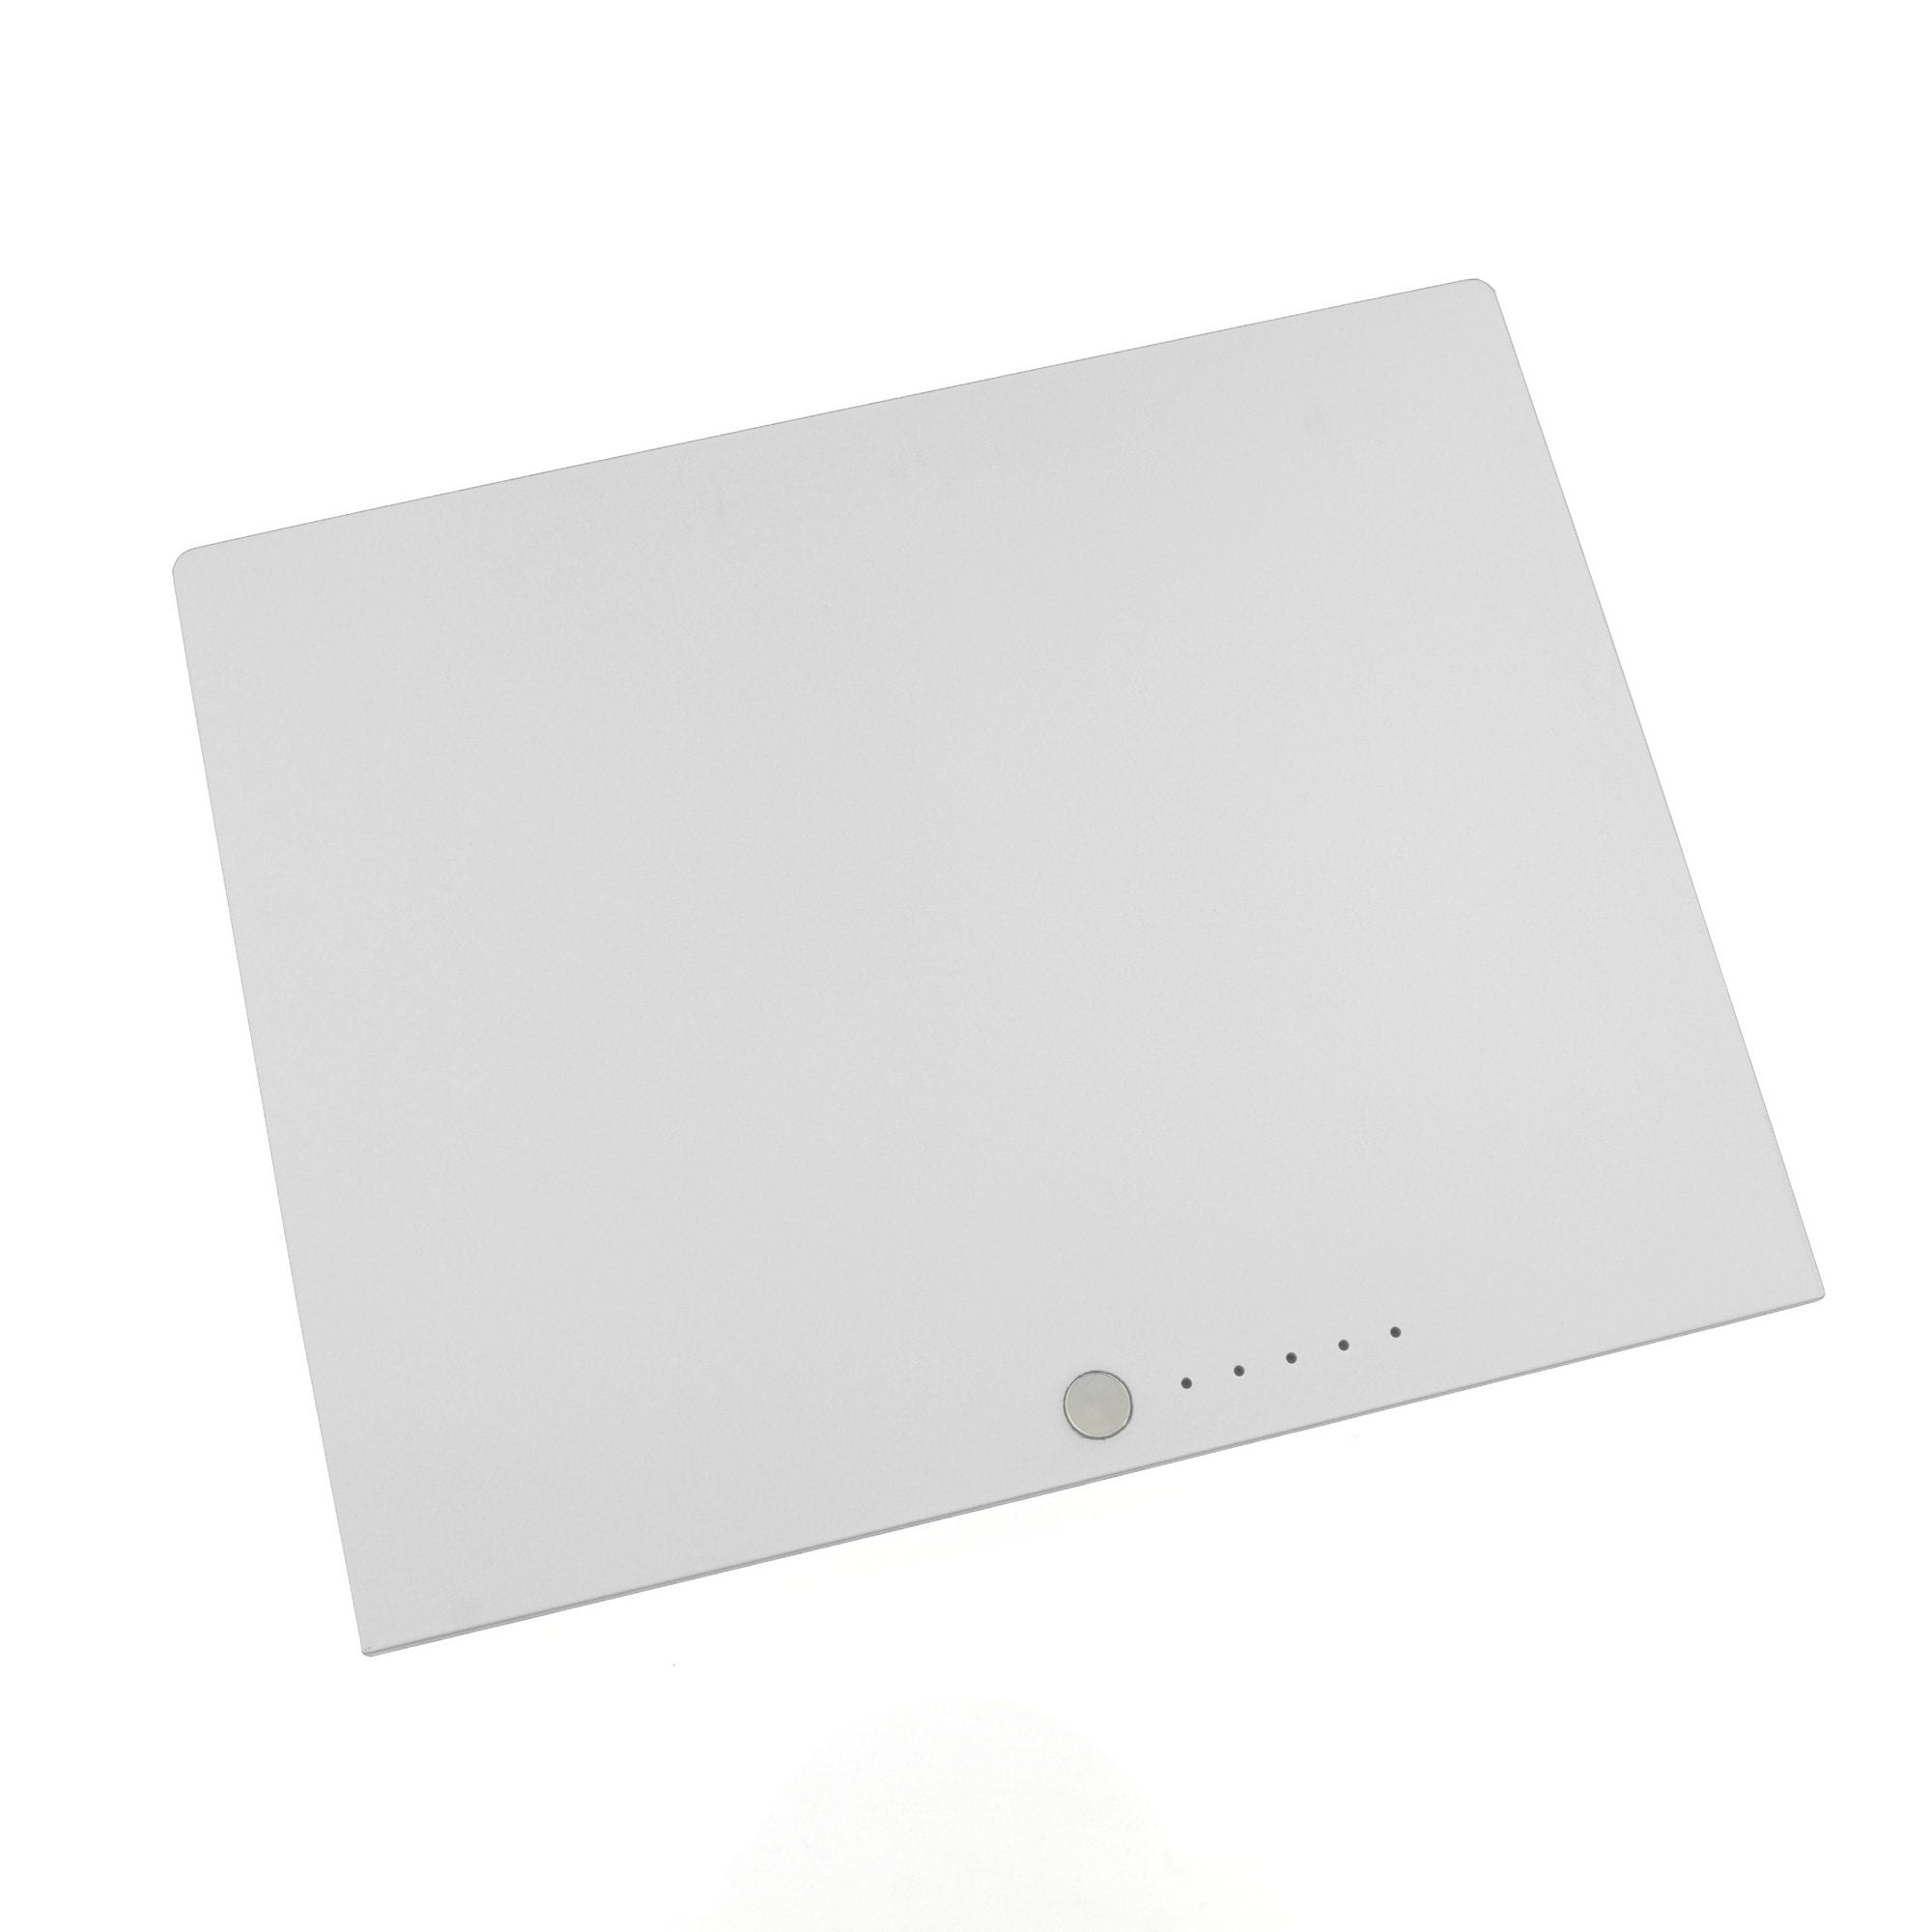 "MacBook Pro 15"" Replacement Battery"